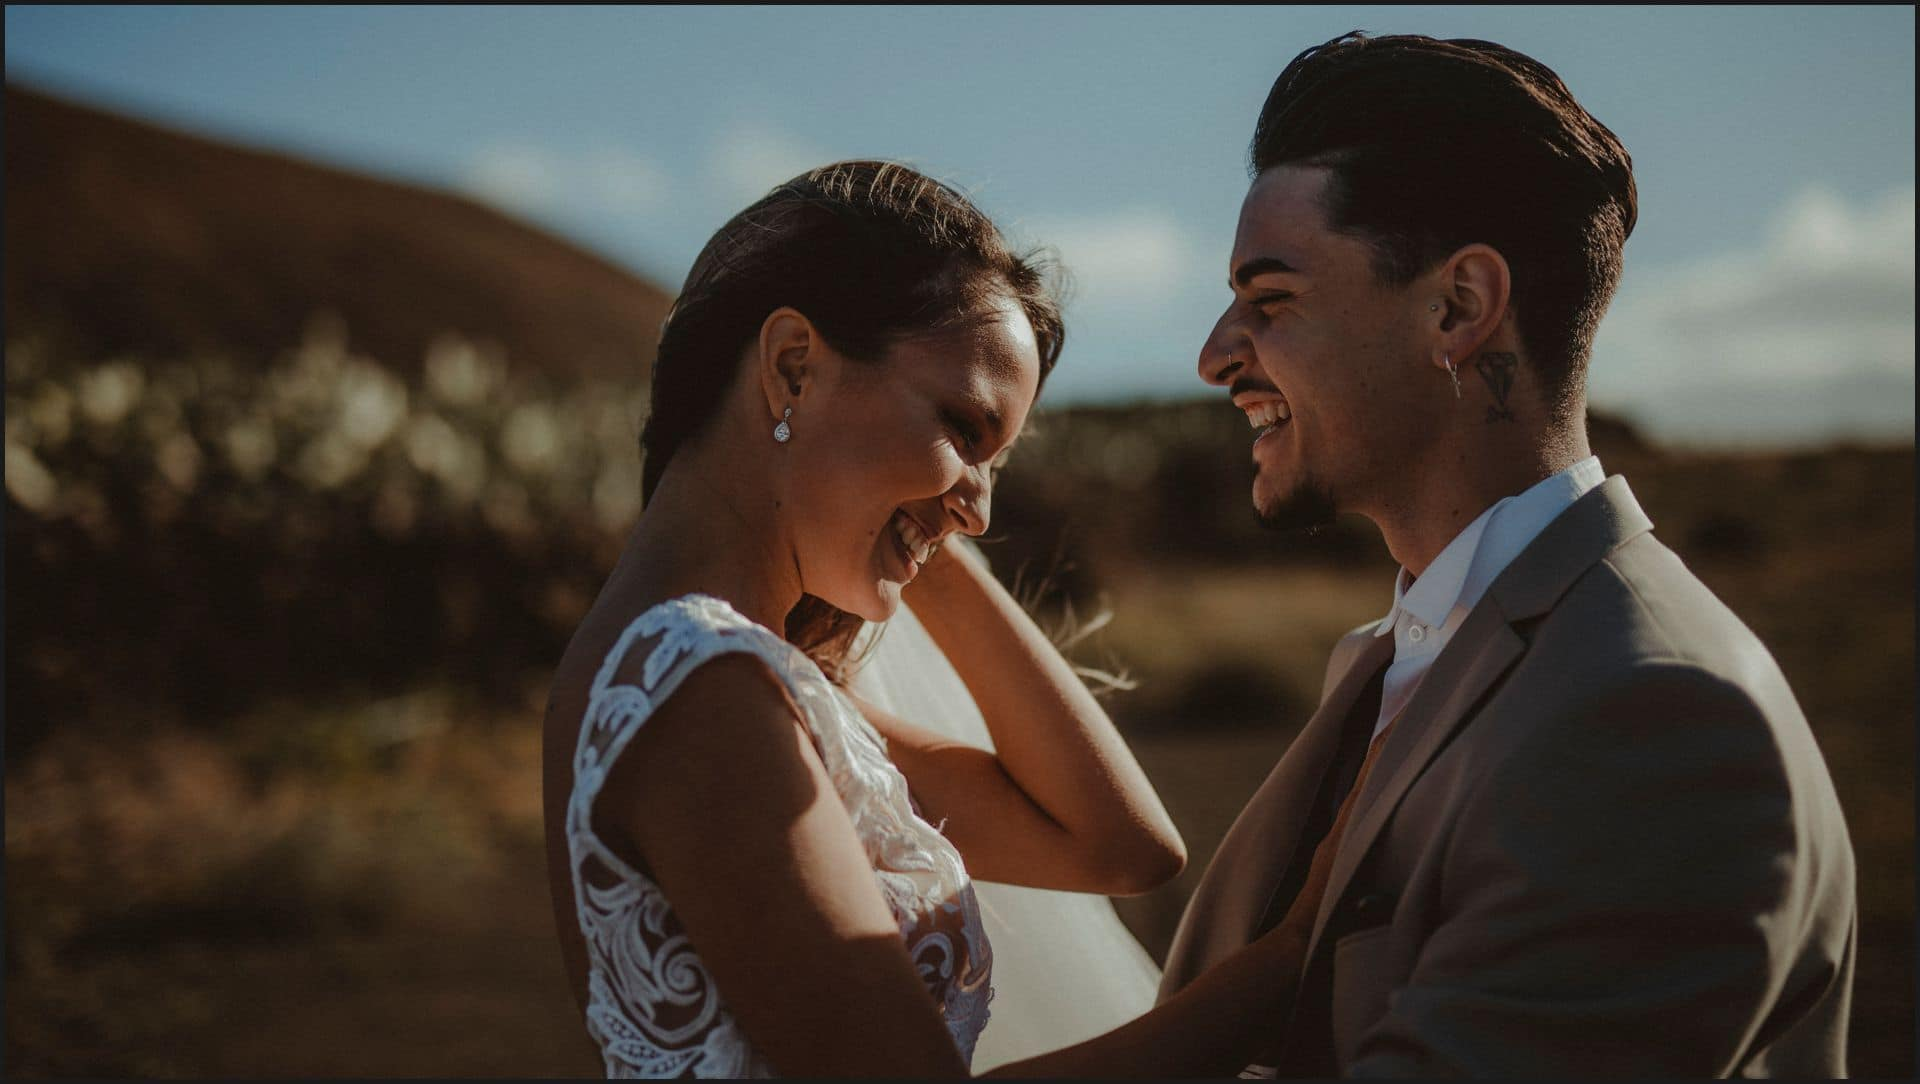 lanzarote, wedding, first look, bride, groom, love